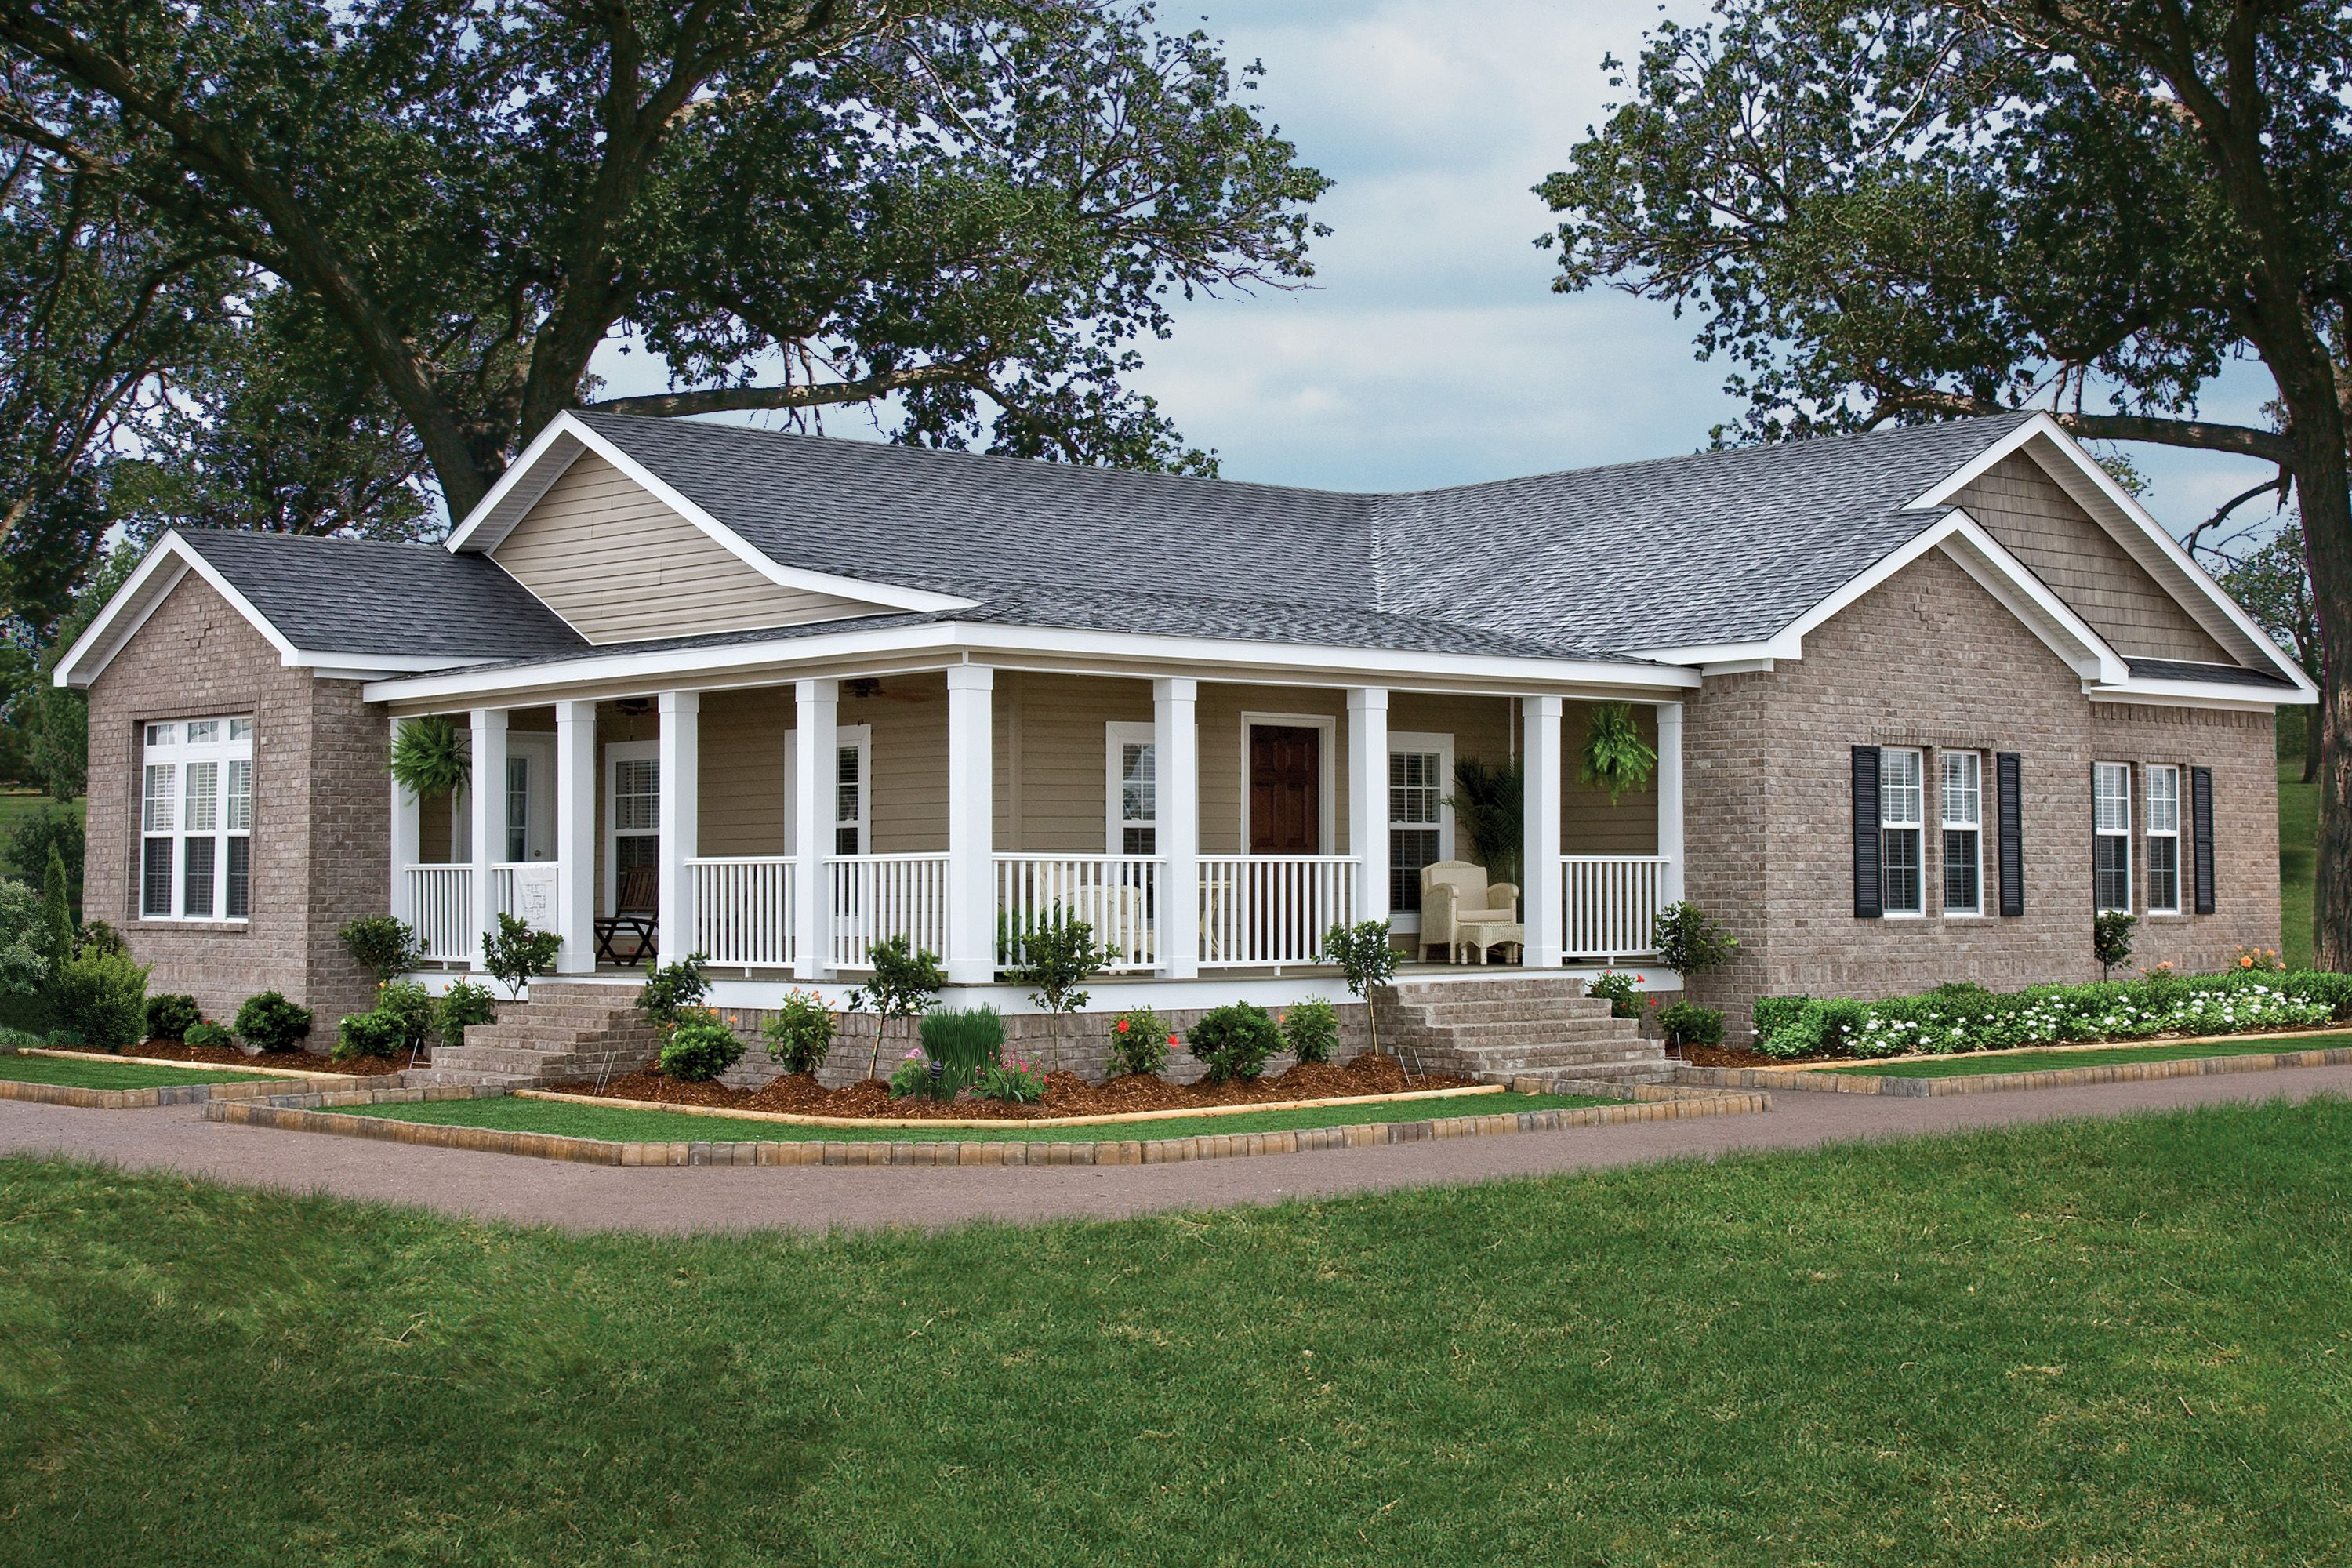 Clayton Mobile Homes In Georgia on prefab homes in georgia, container homes in georgia, new manufactured homes in georgia, cave homes in georgia,